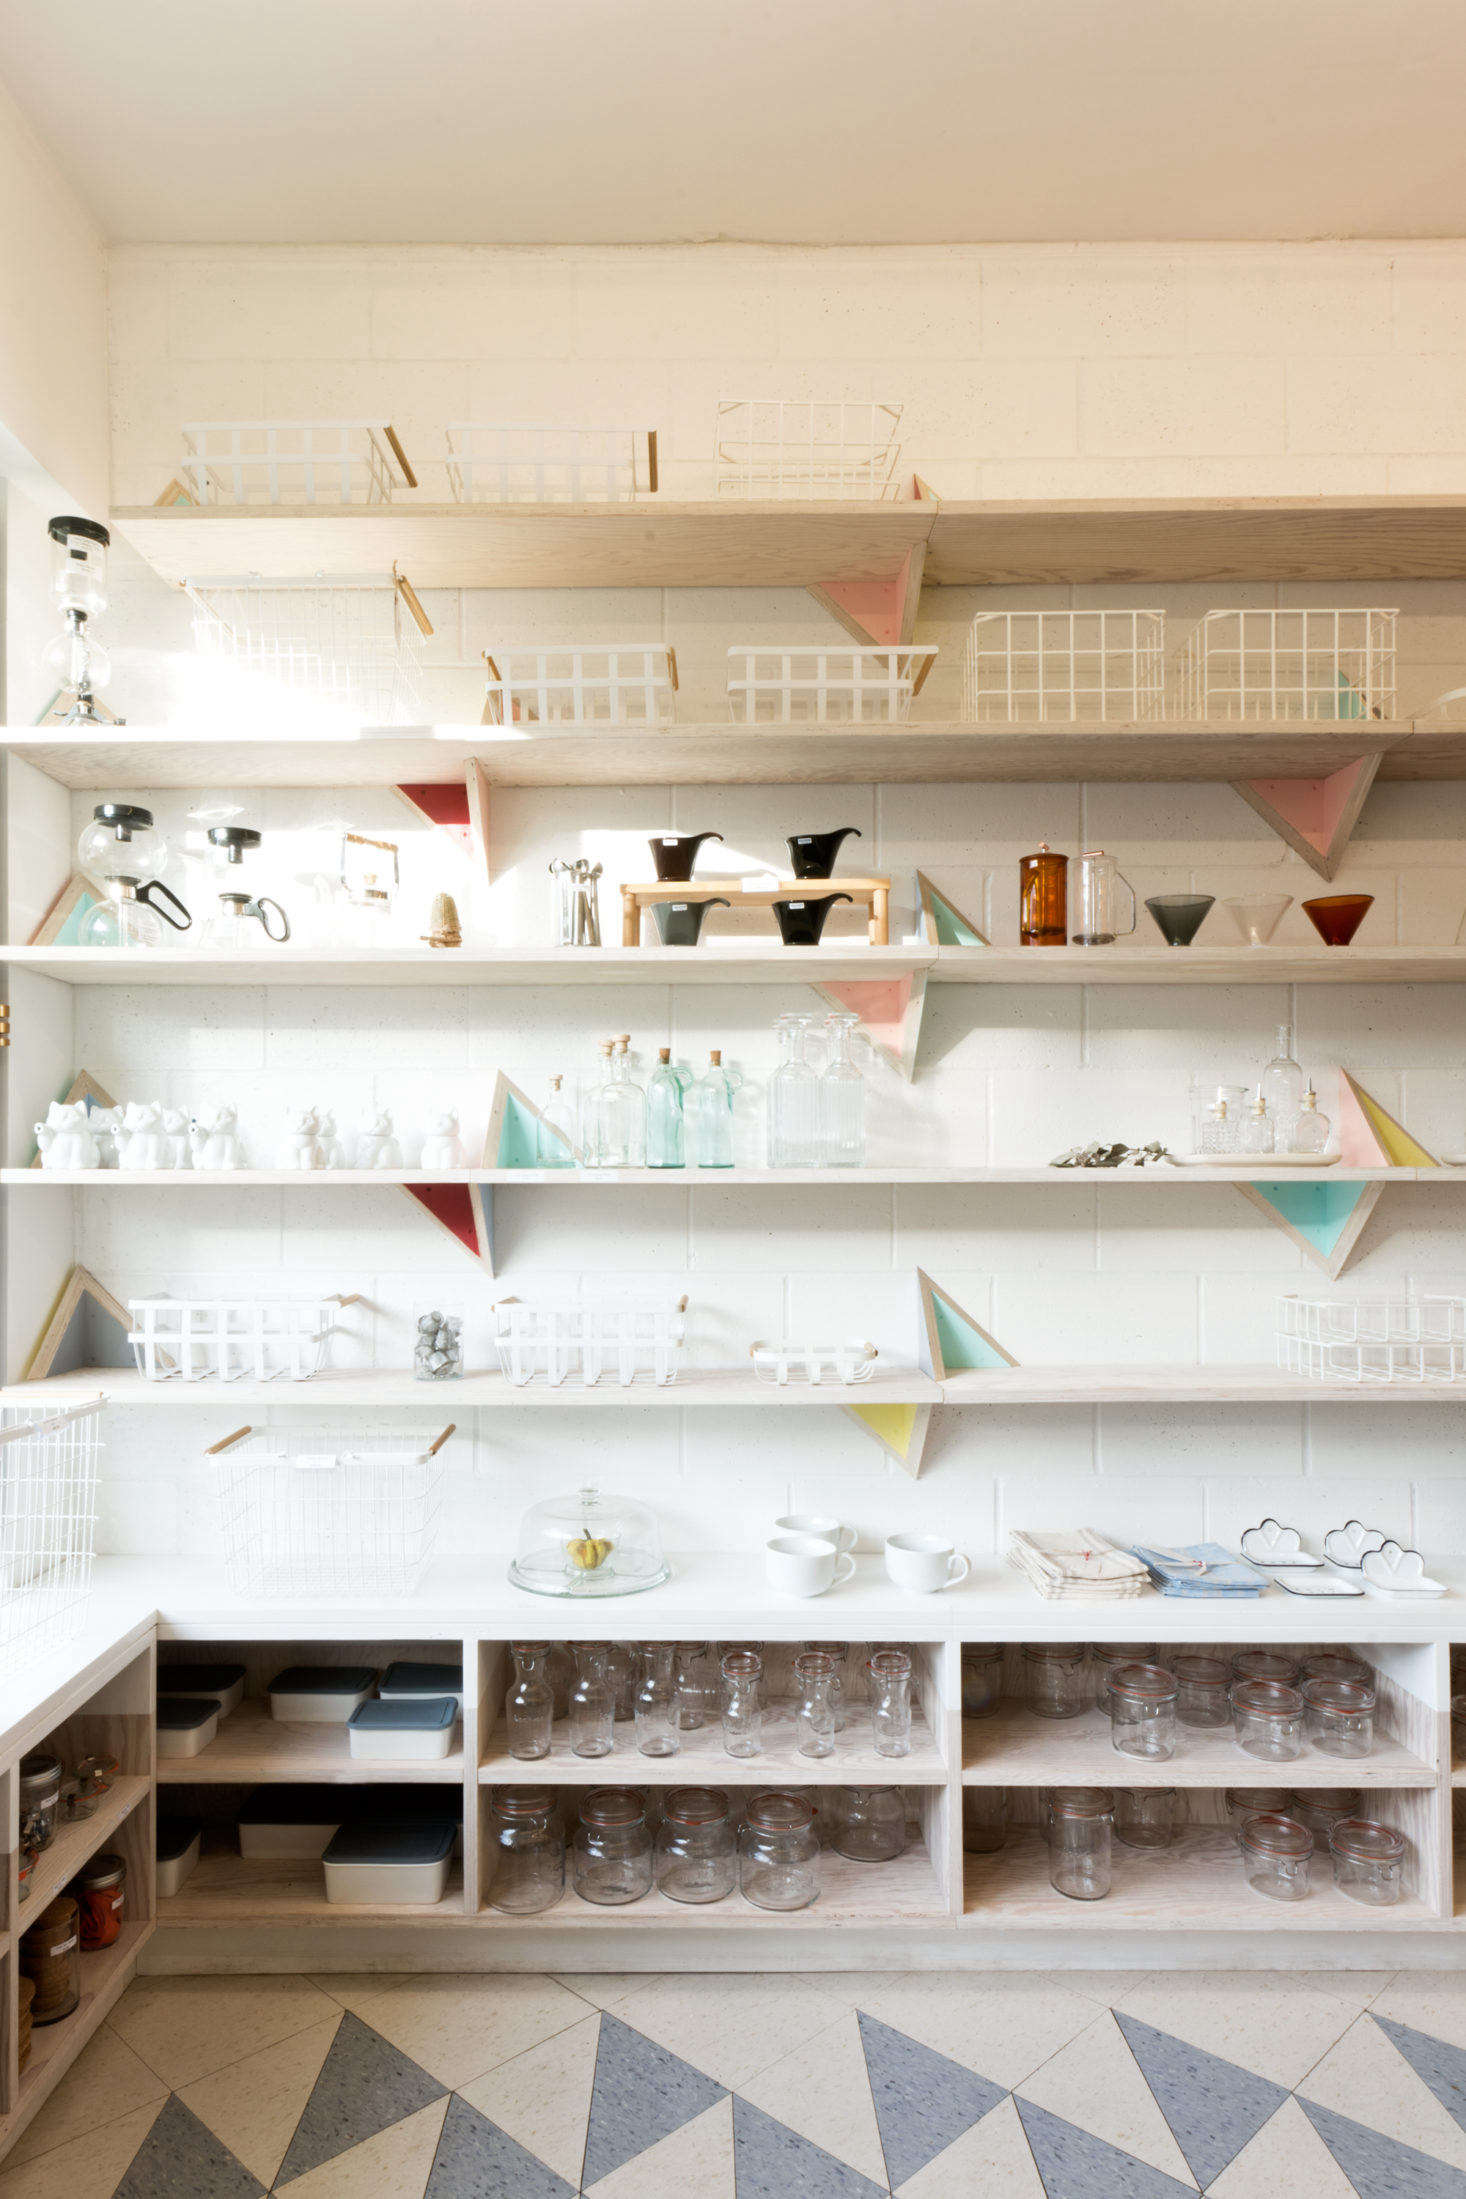 A curated selection of non-plastic kitchen essentials is displayed on regionally sourced Douglas fir plywood shelving.